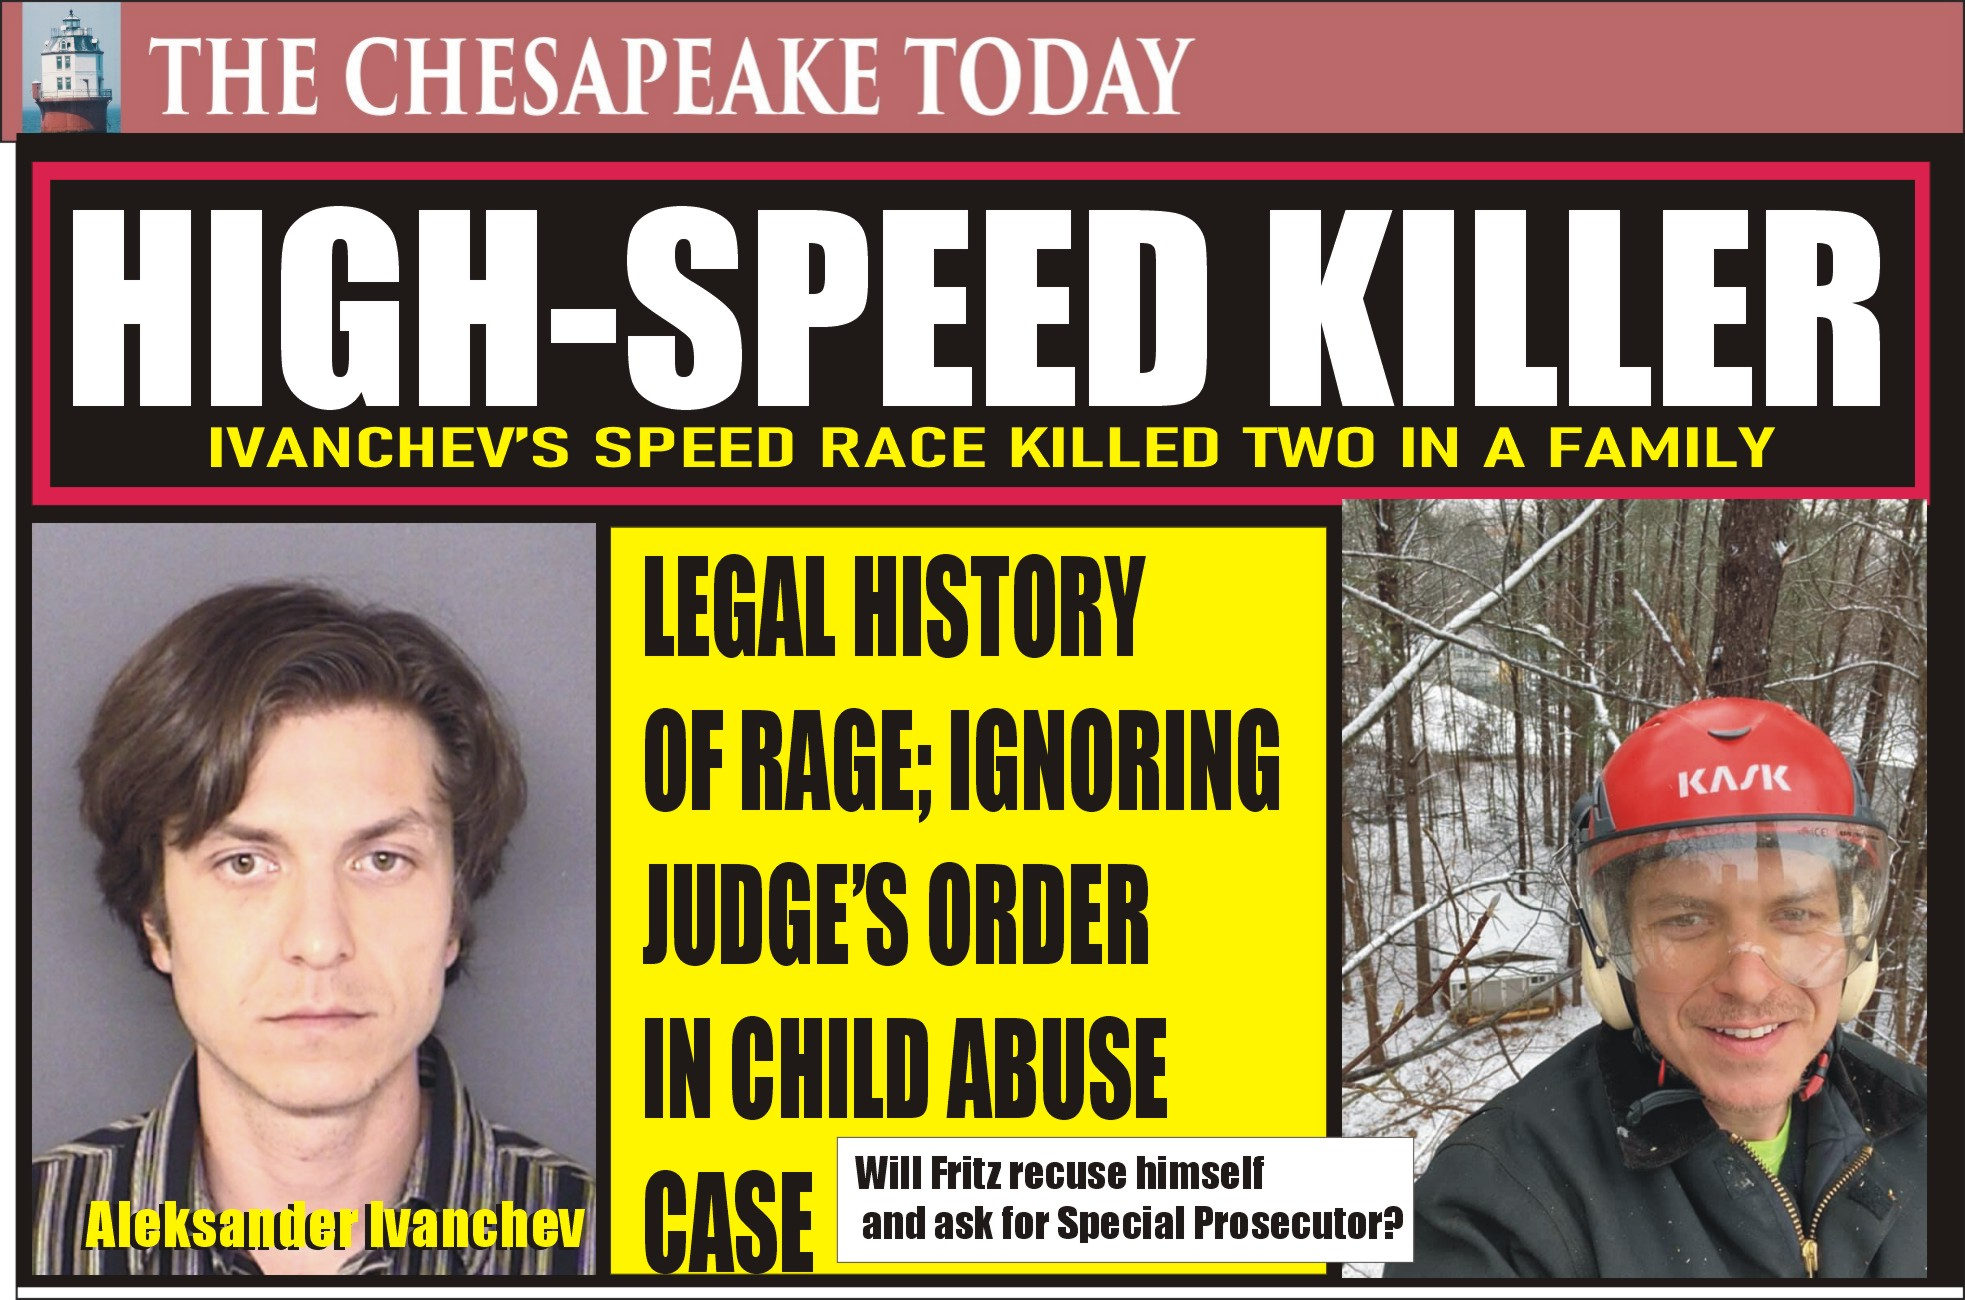 HIGH-SPEED MURDER: Hot Rod Ivanchev killed two in a family when he blew through a red light